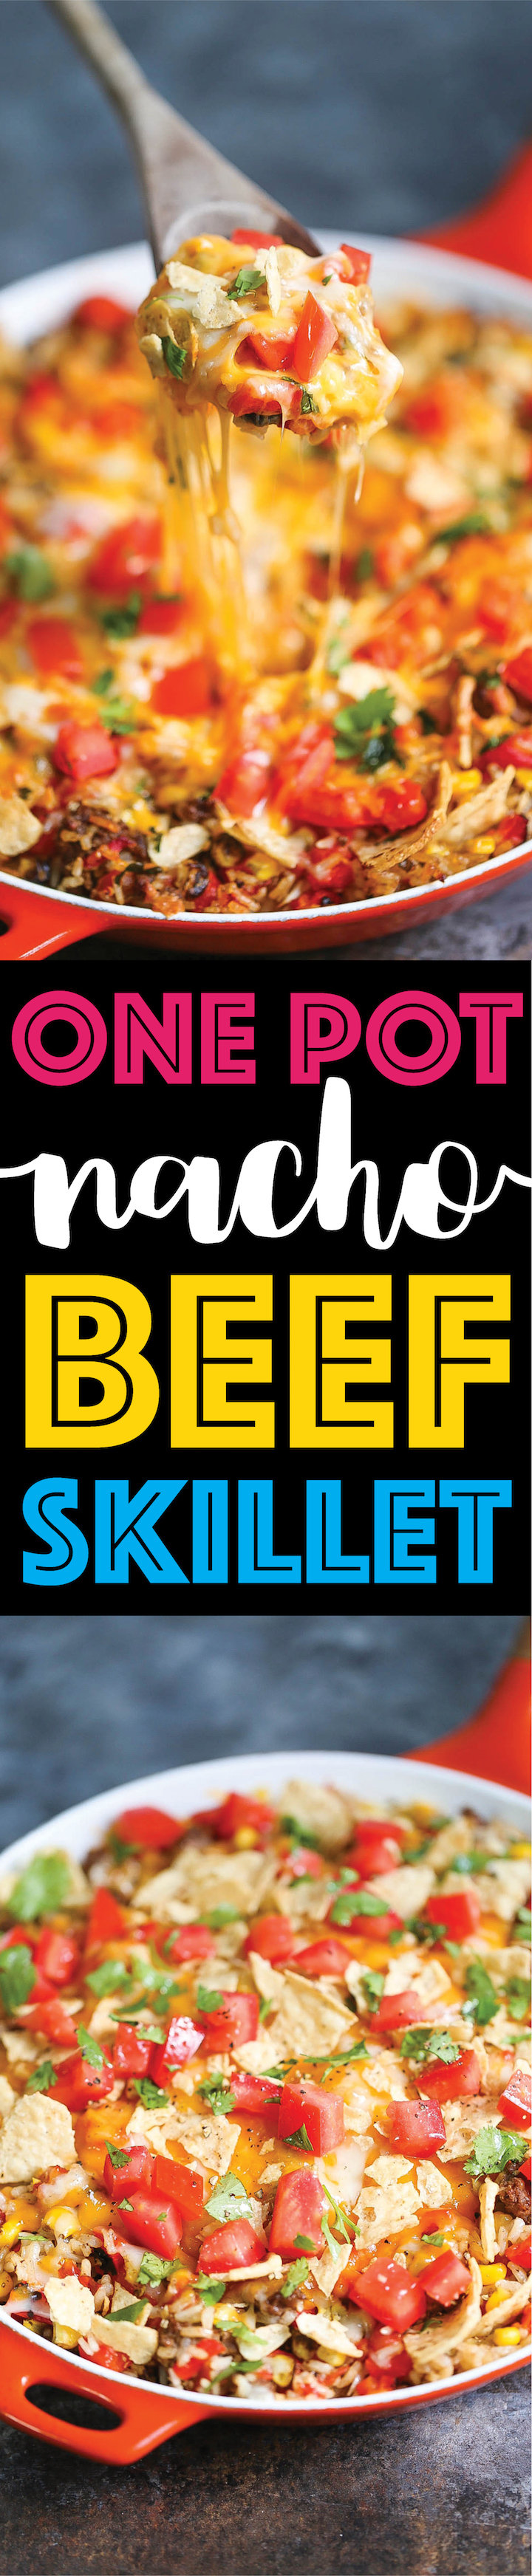 One Pot Nacho Beef Skillet - A 30 minute ground beef skillet dinner where you only need to dirty up ONE PAN! With corn, tomatoes, bell peppers and cheese!